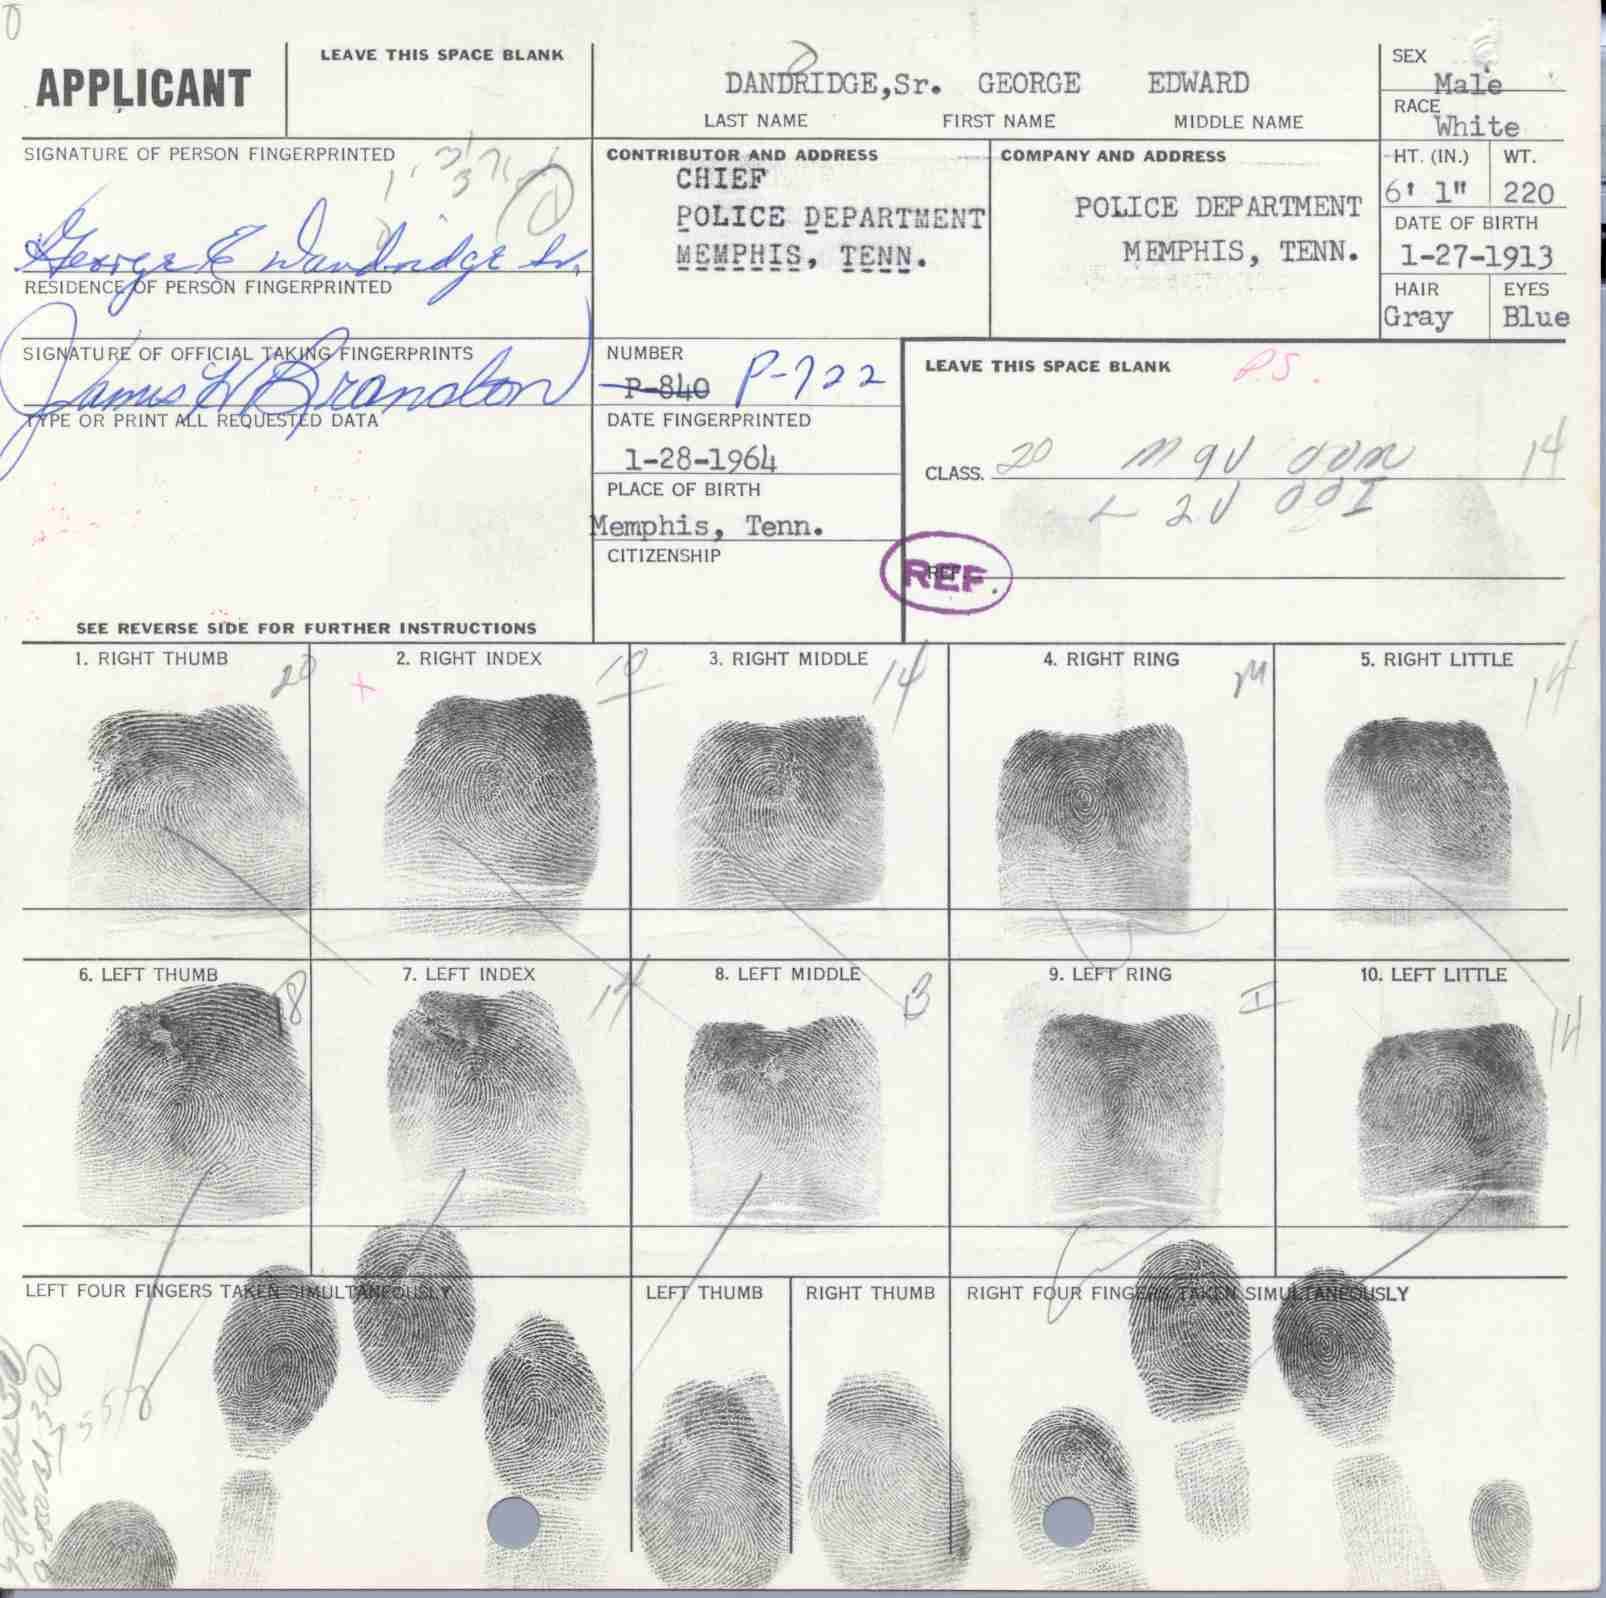 george edward dandridge fingerprint card.jpg